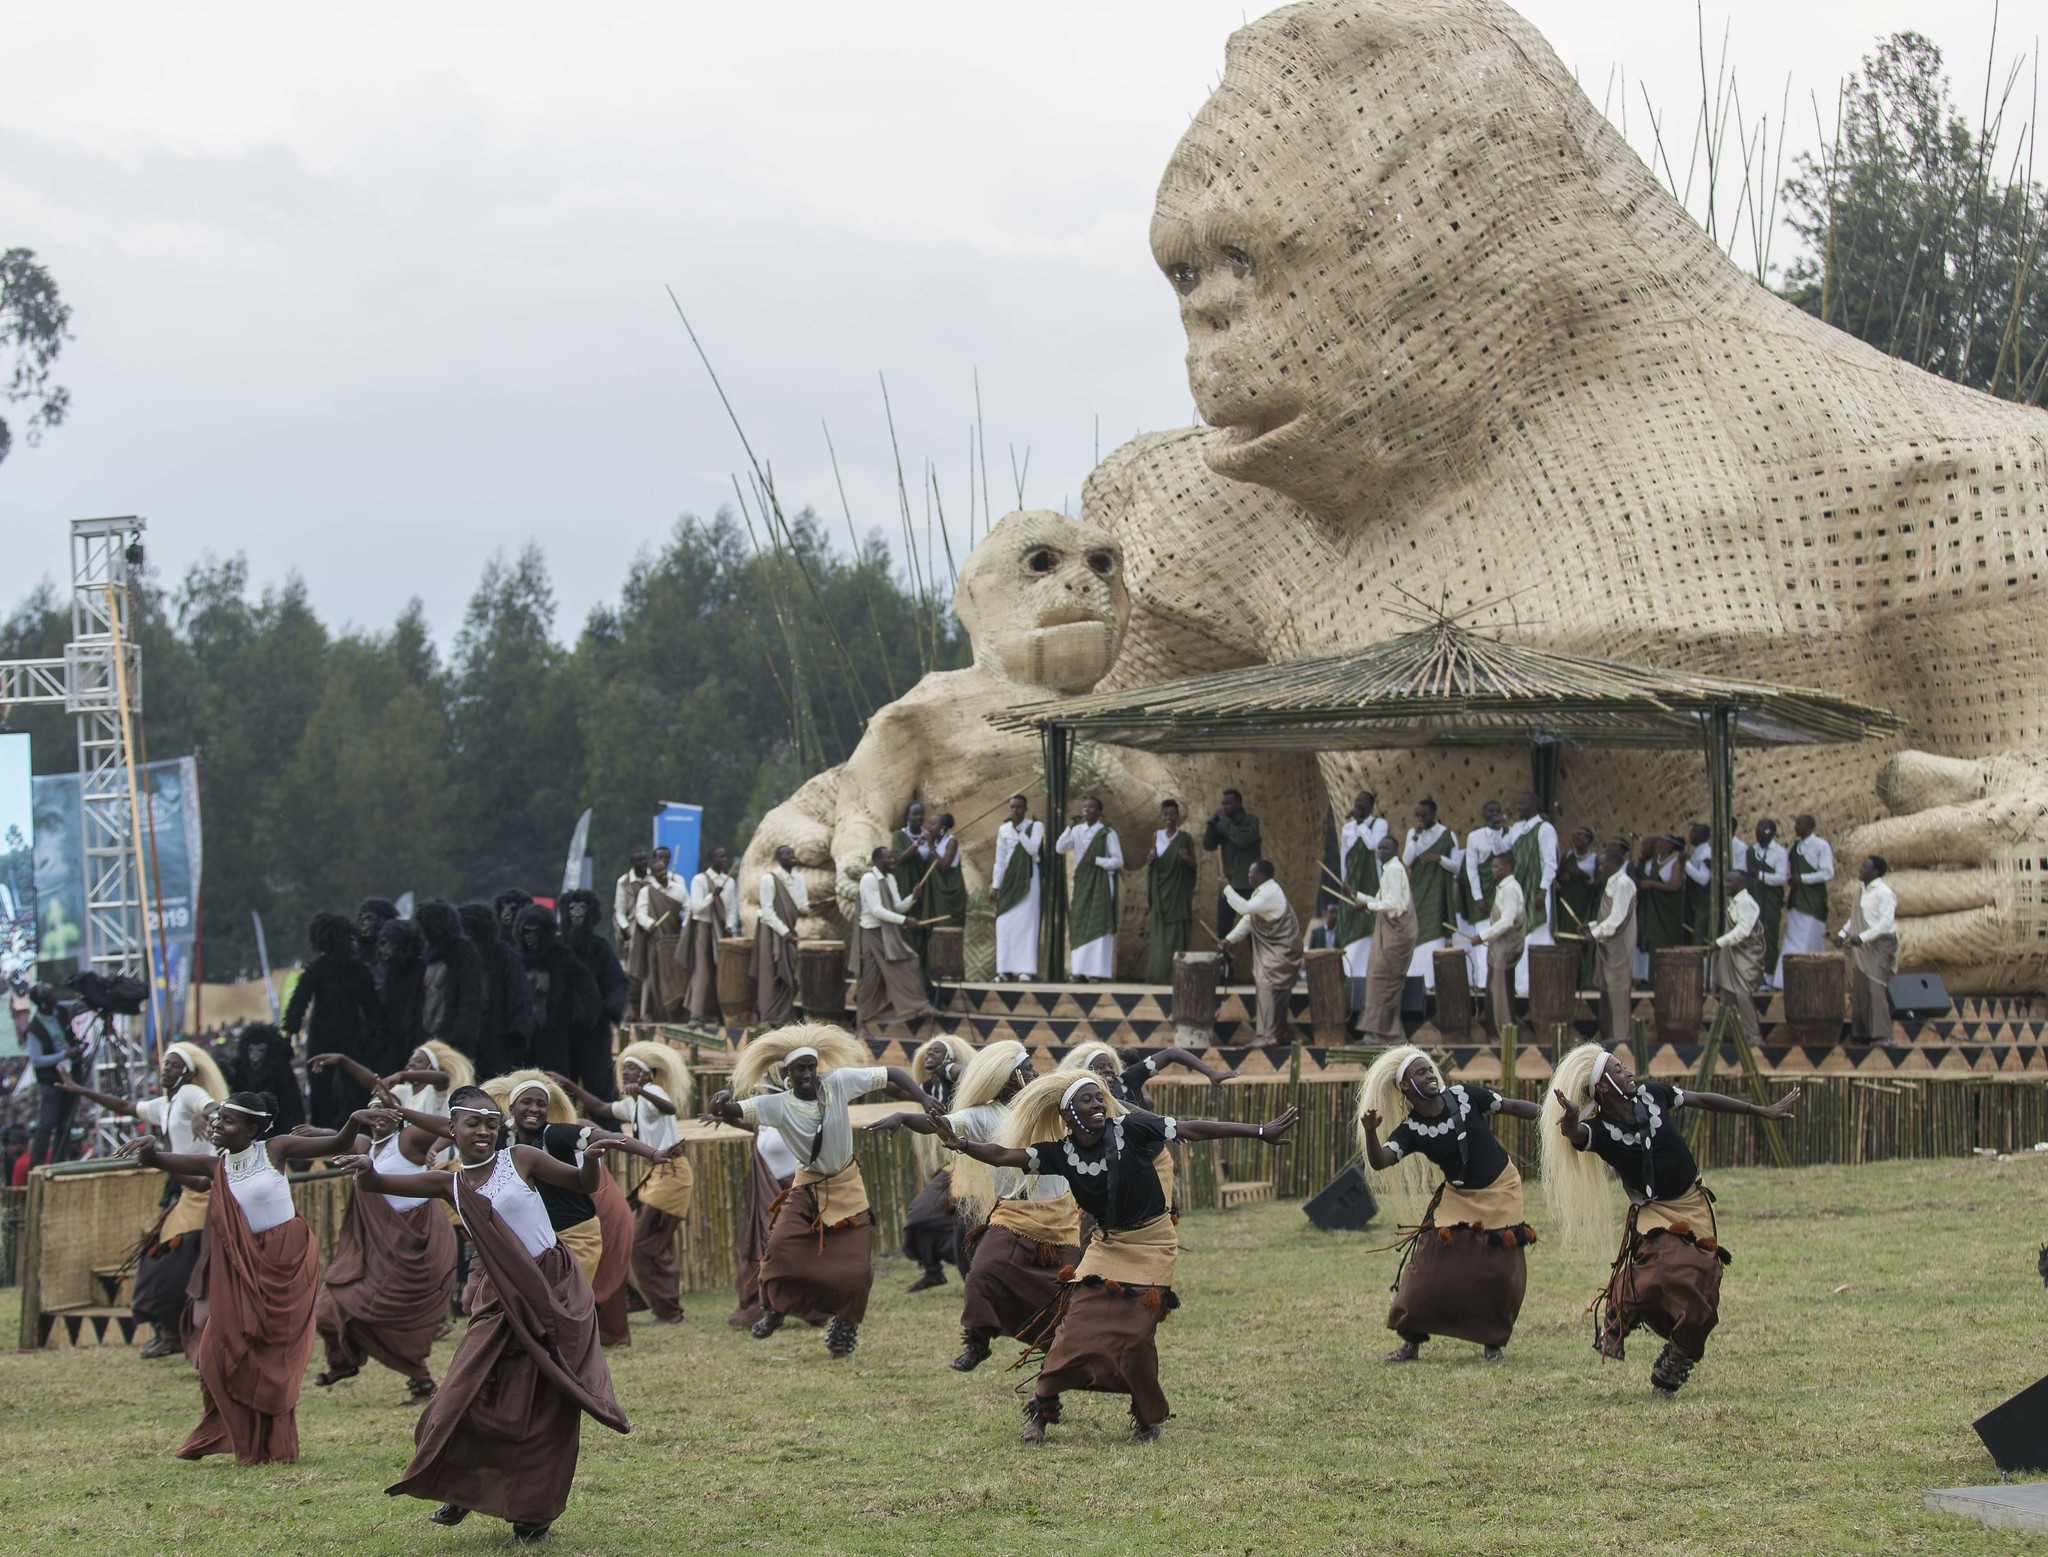 Kwita Izina: The Historically-Rooted Rwandan Ceremony That Helps Protect Mountain Gorillas